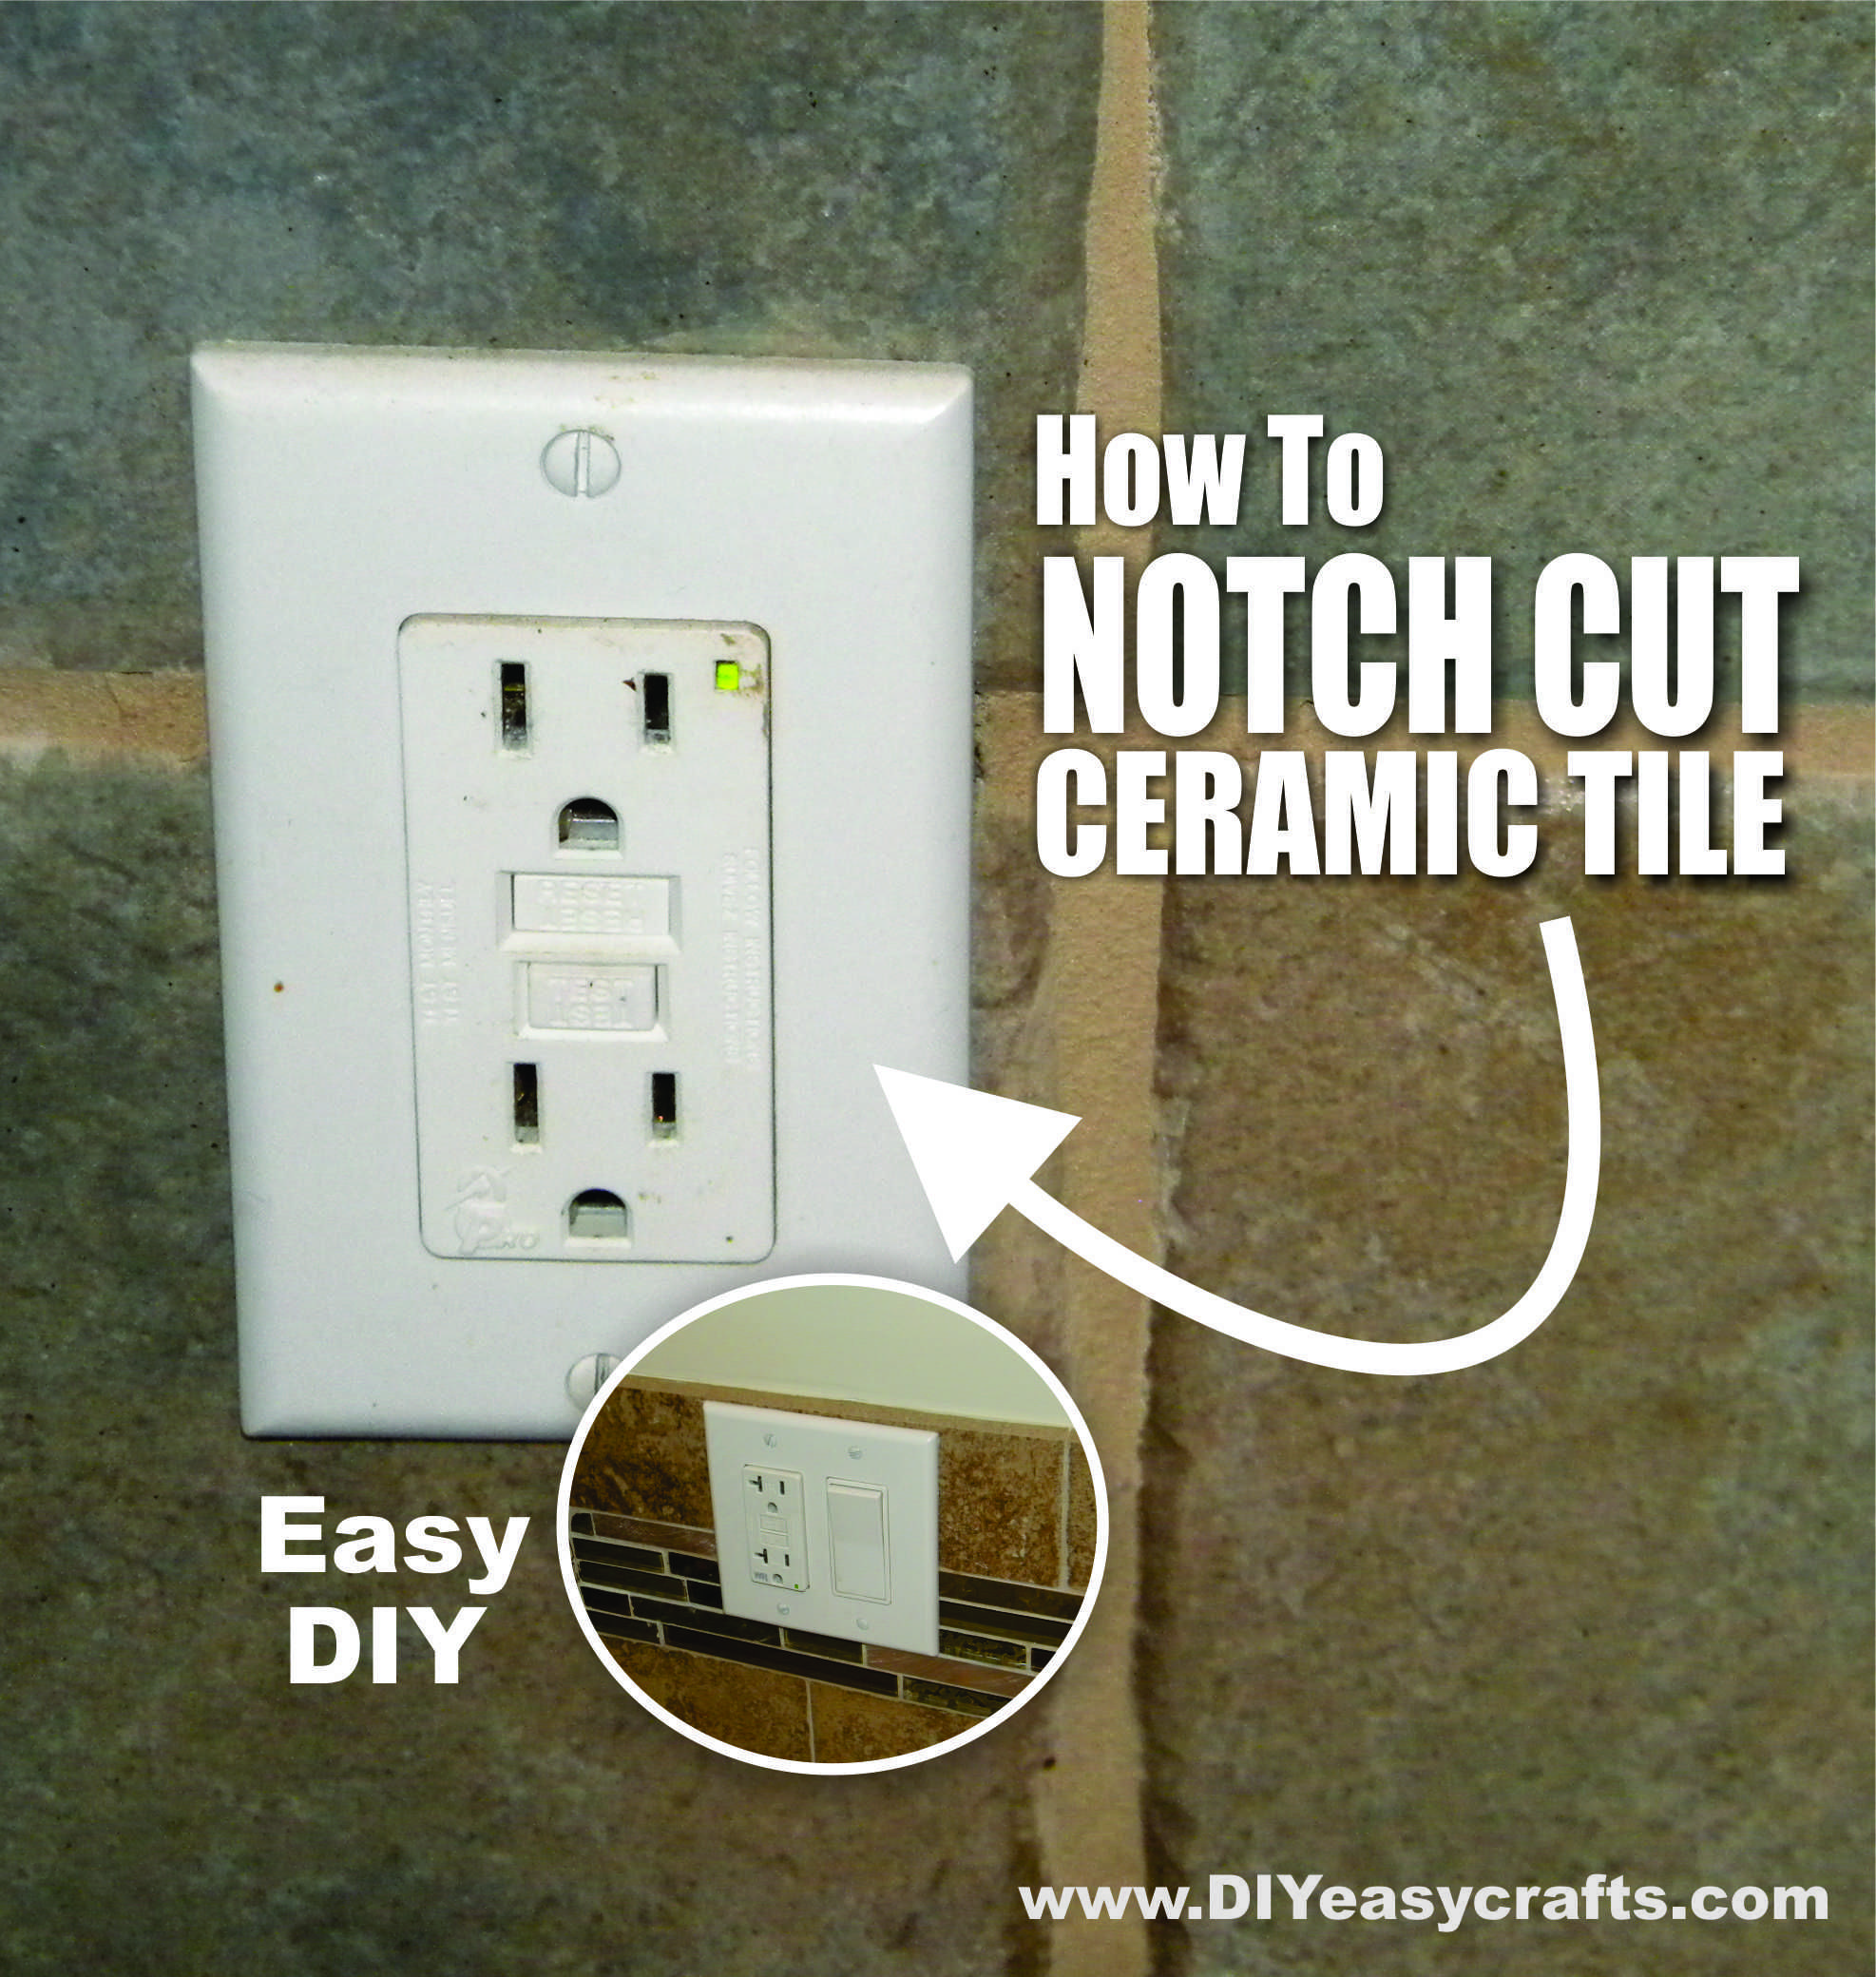 Diy how to easily notch cut and cut square holes in ceramic tiles diy how to easily notch cut ceramic tiles we show a variety of ways to easily make notch cuts and square holes in ceramic tiles perfect for cutting holes dailygadgetfo Images